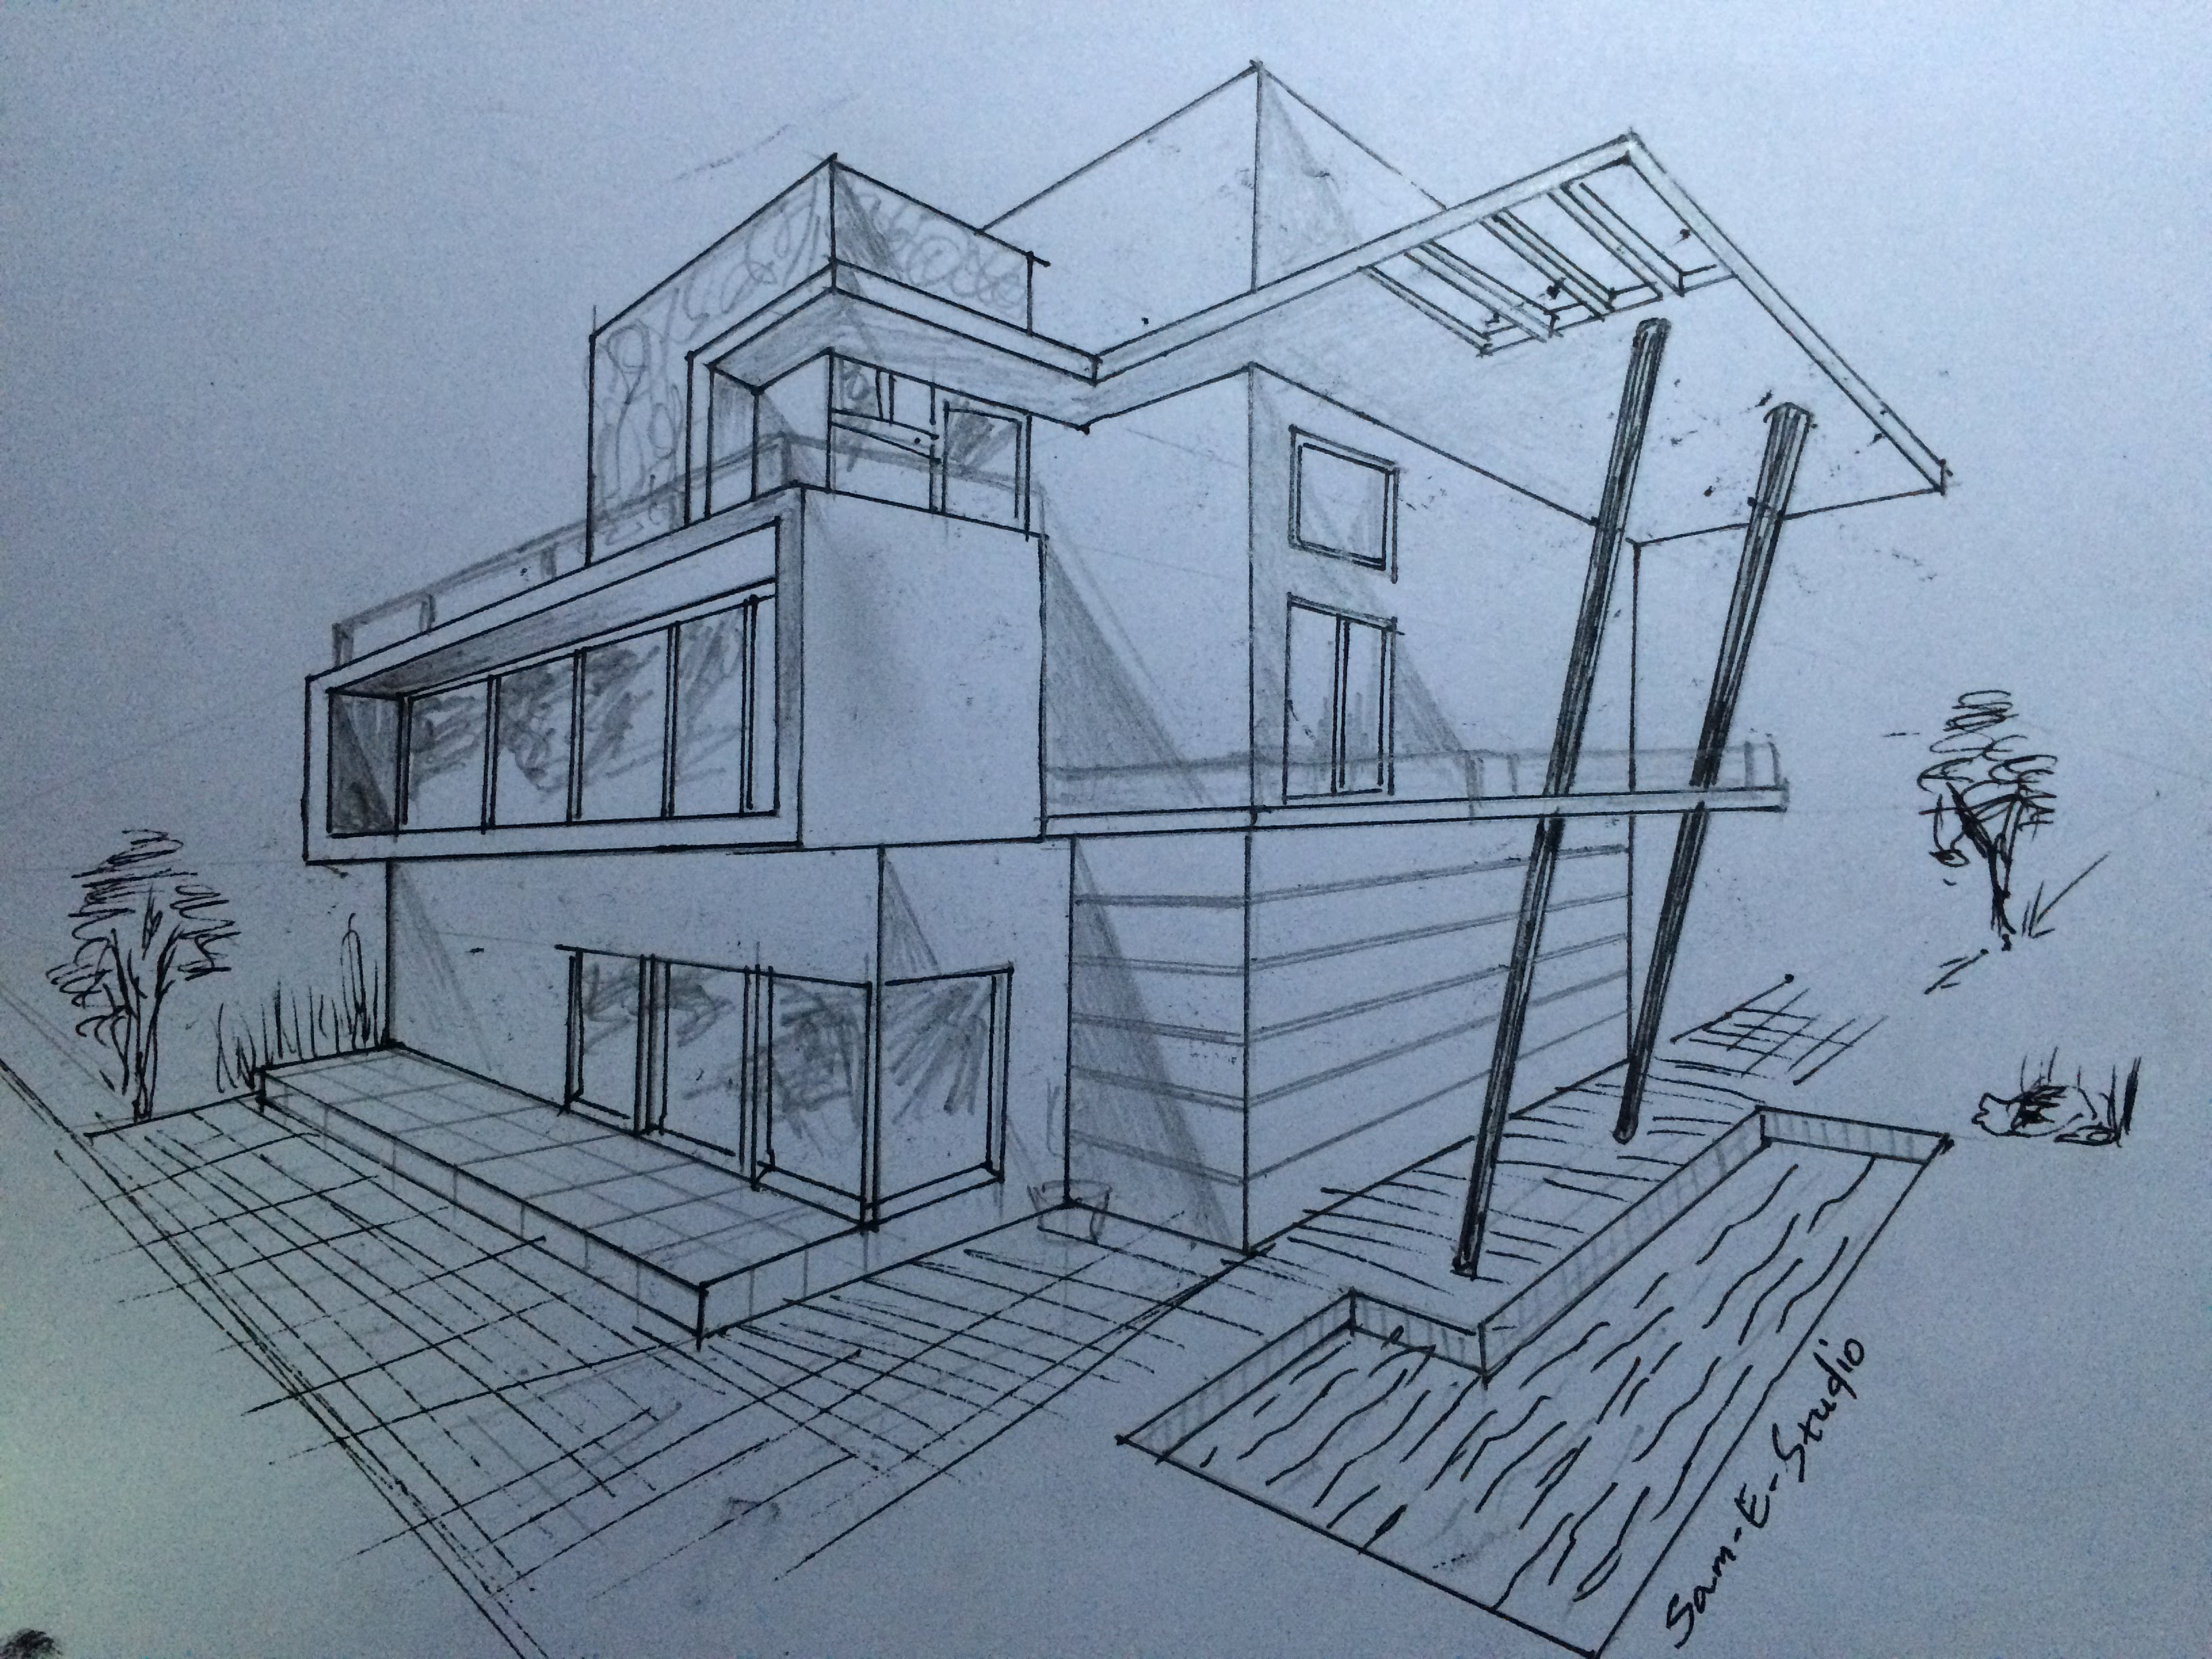 Drawn house modern architectural design (2 ARCHITECTURE PERSPECTIVE HOUSE MODERN